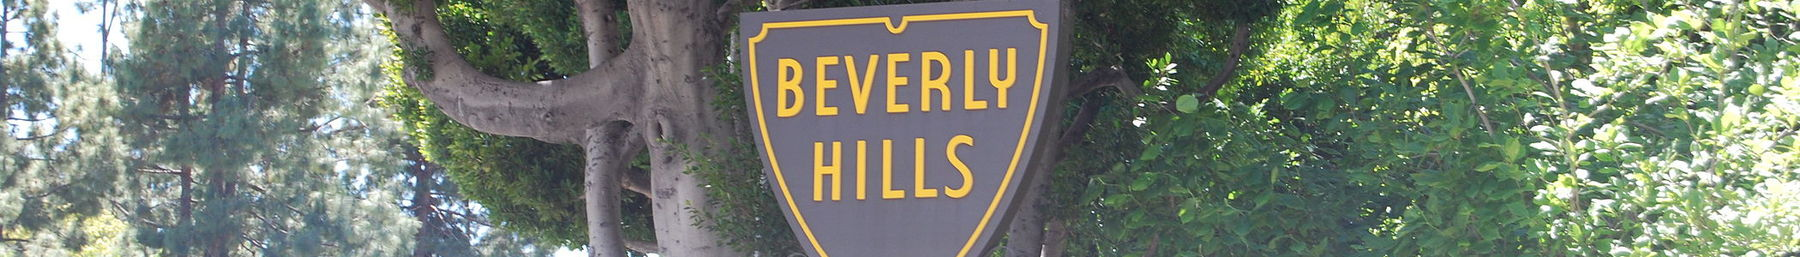 Beverly Hills city sign at Sunset Boulevard and Sierra Drive